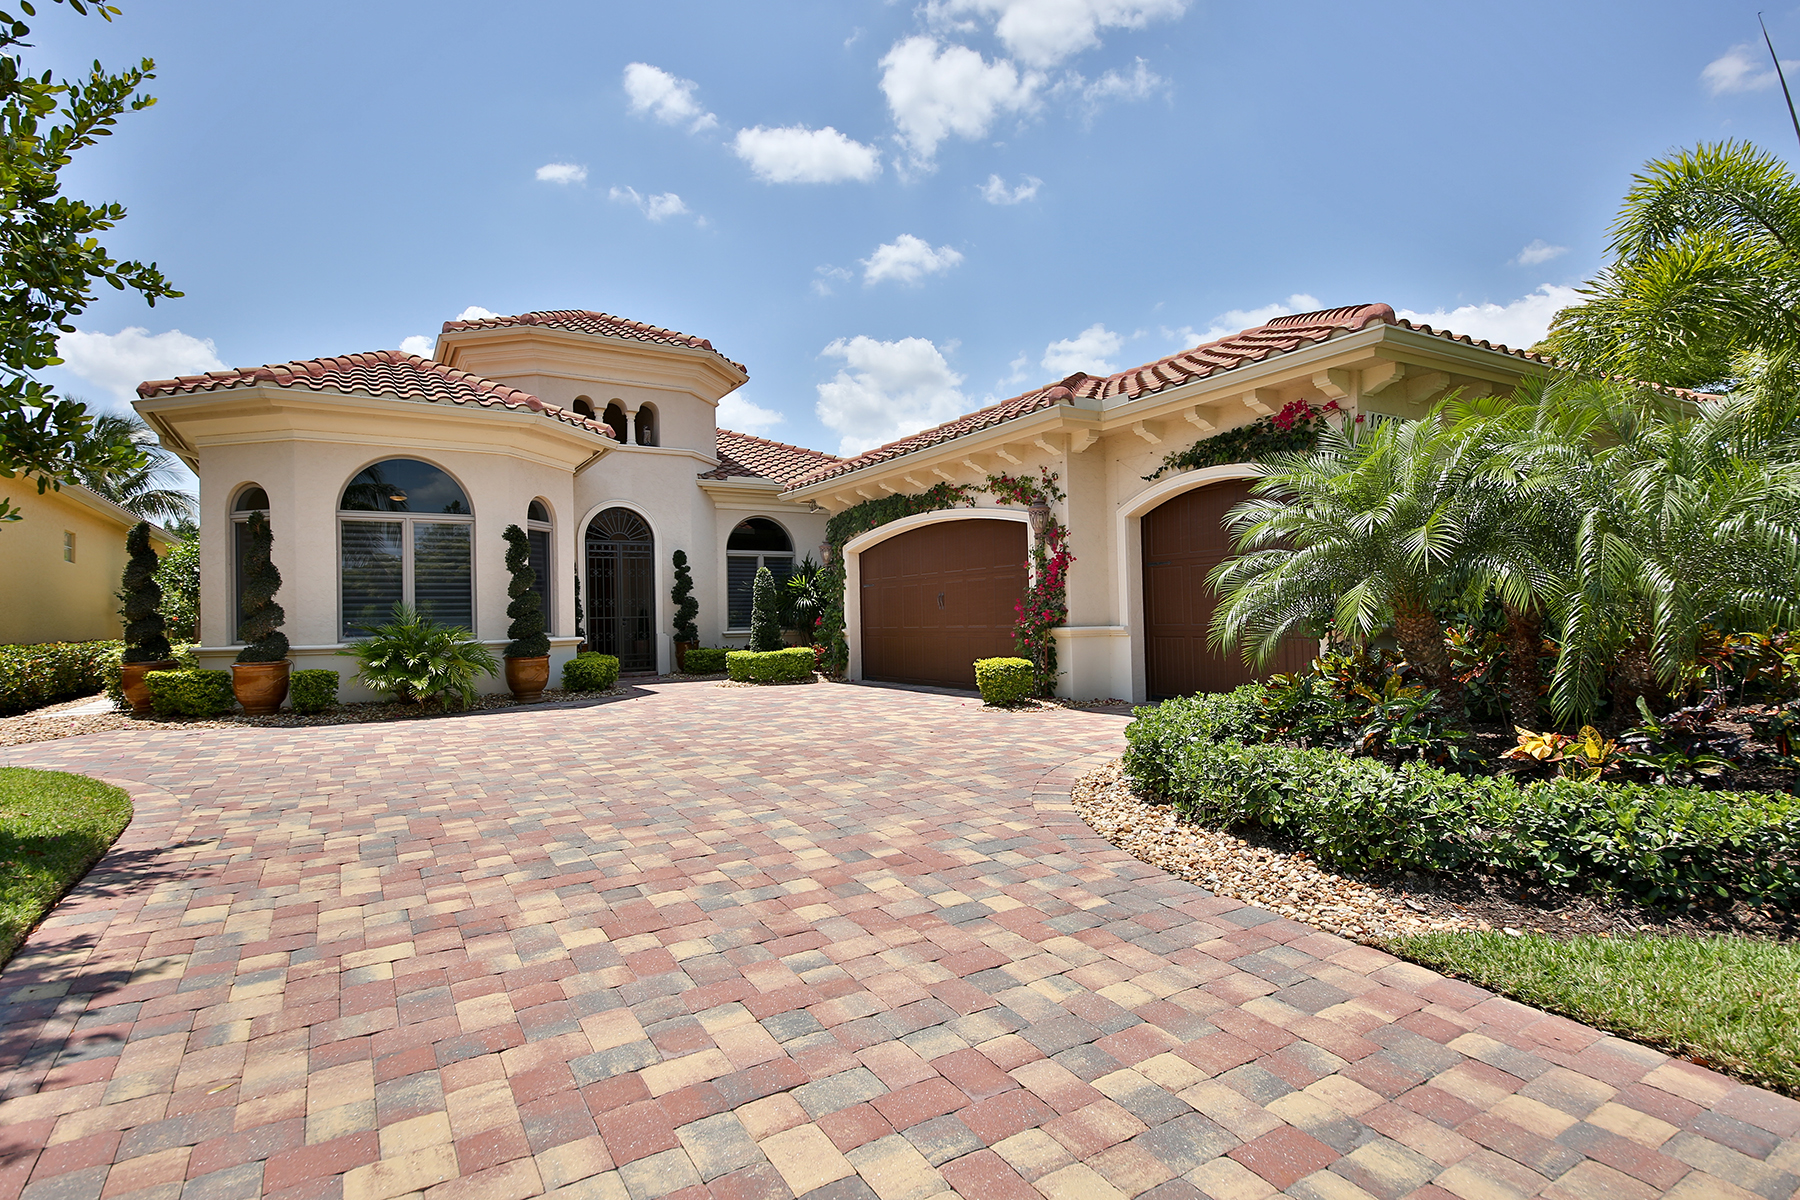 Casa Unifamiliar por un Venta en CAPRINI at MIROMAR LAKES BEACH AND GOLF CLUB 18291 Via Caprini Dr Miromar Lakes, Florida, 33913 Estados Unidos